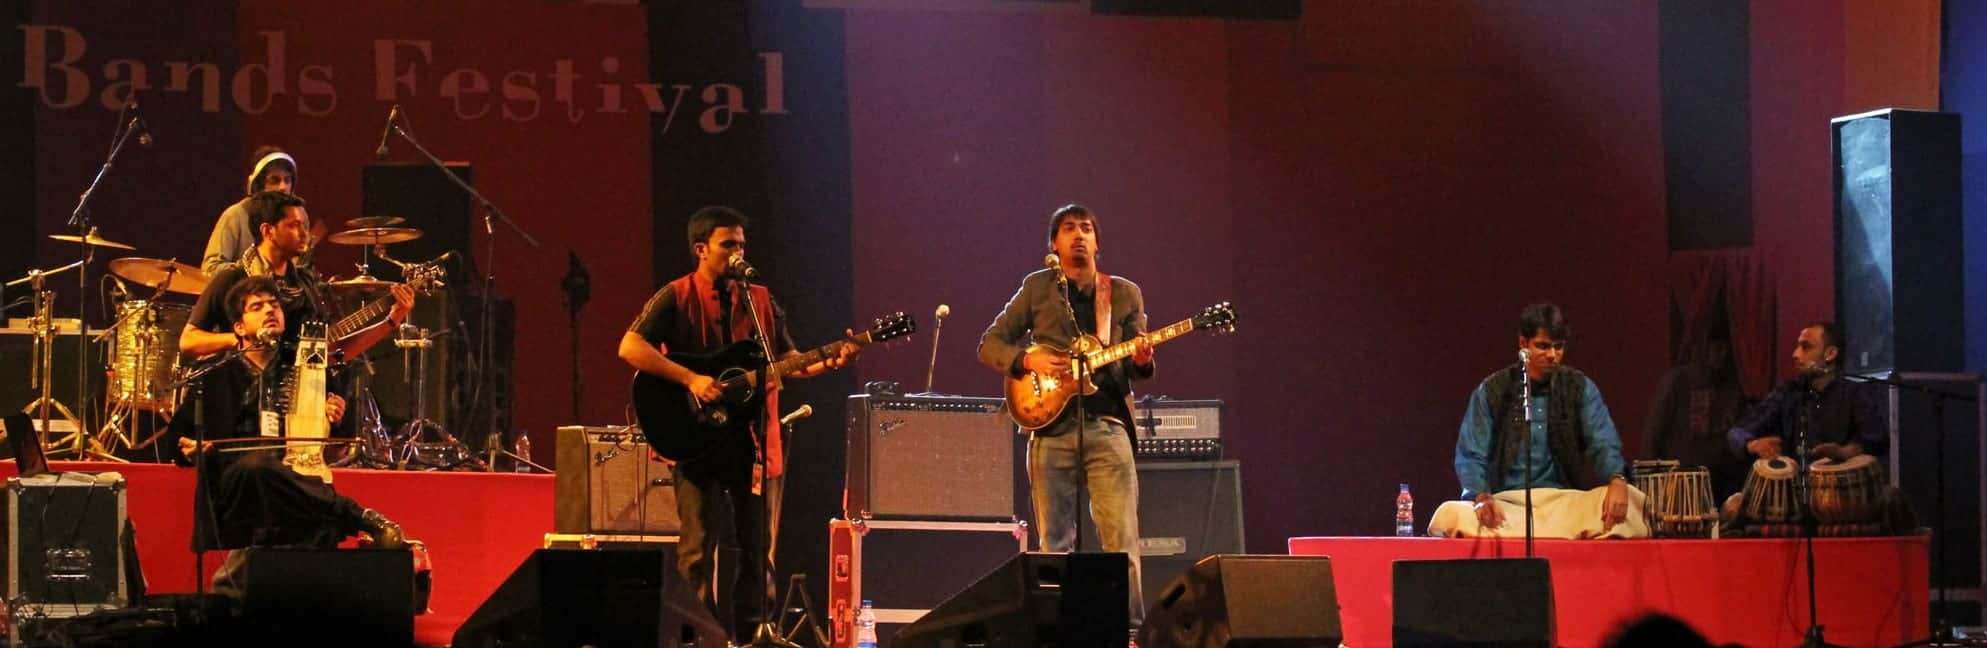 Advaita (New Delhi) during their performance 1 Photo Credit- Ajay Lal